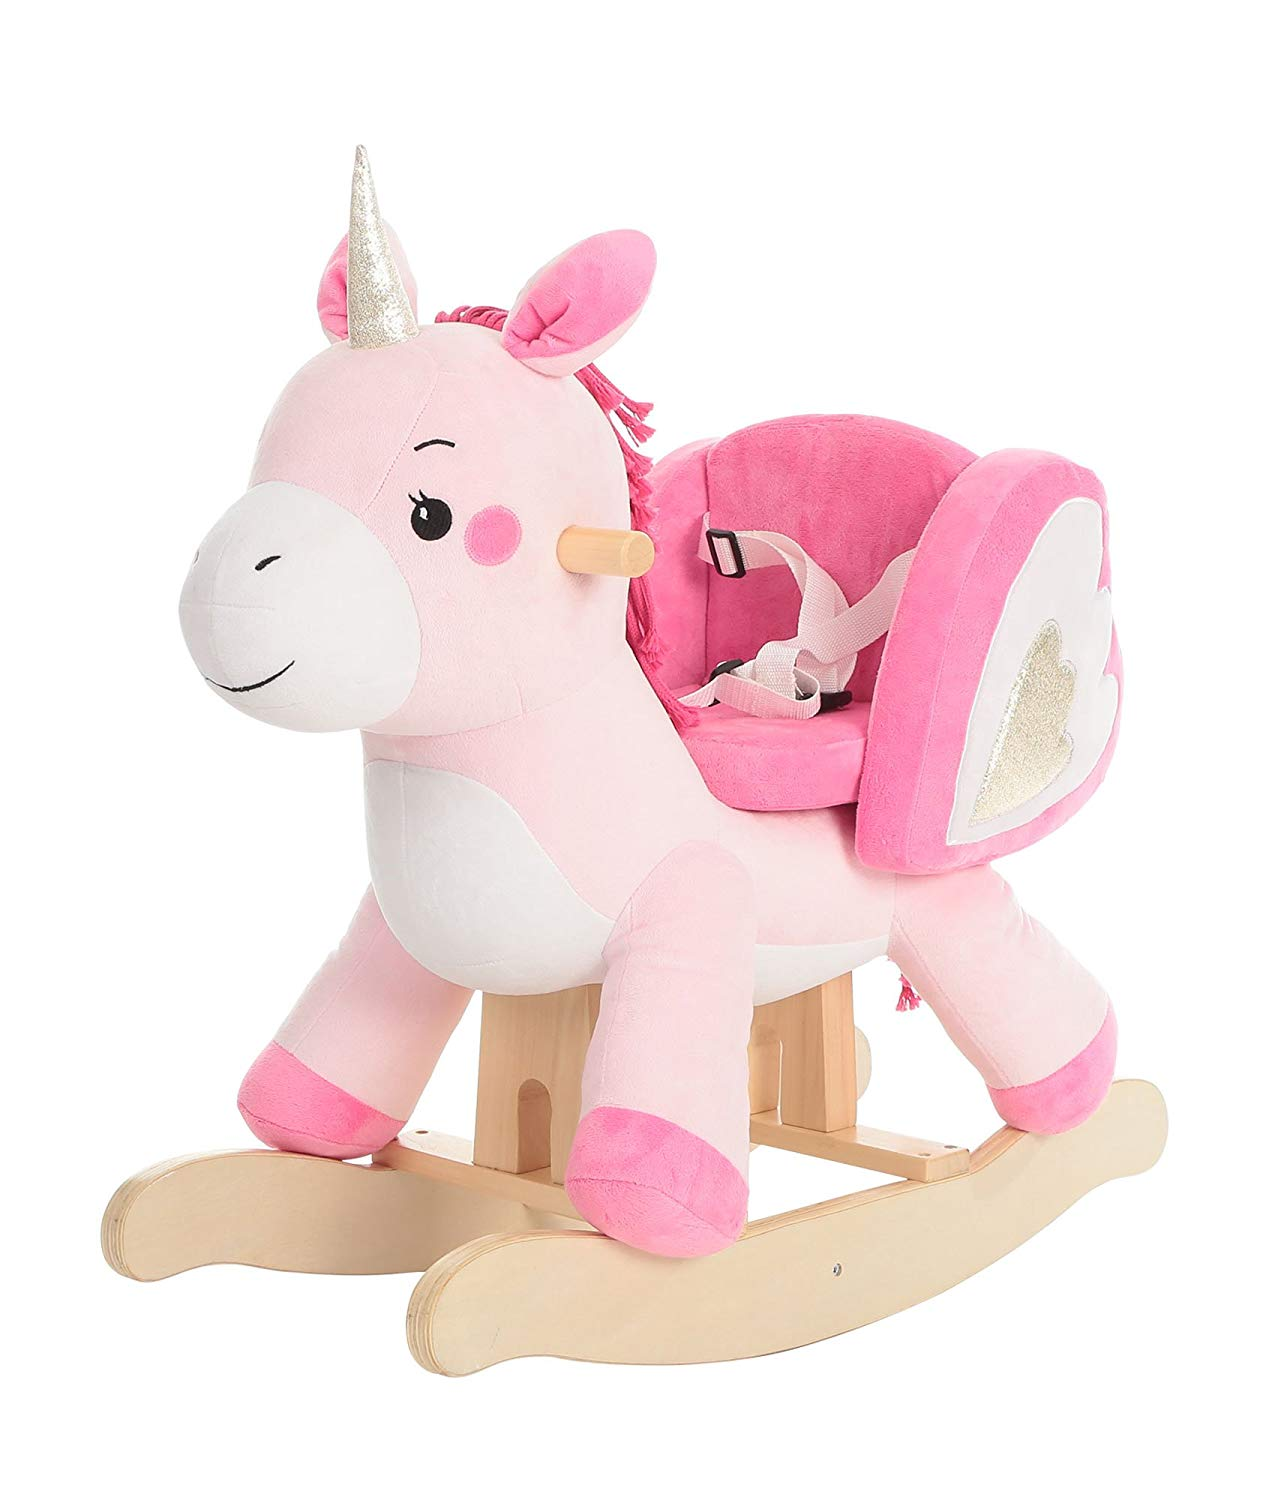 Labebe - Baby Rocking Horse, Pink Ride Unicorn, Kid Ride On Toy for 1-3-Year-Old,